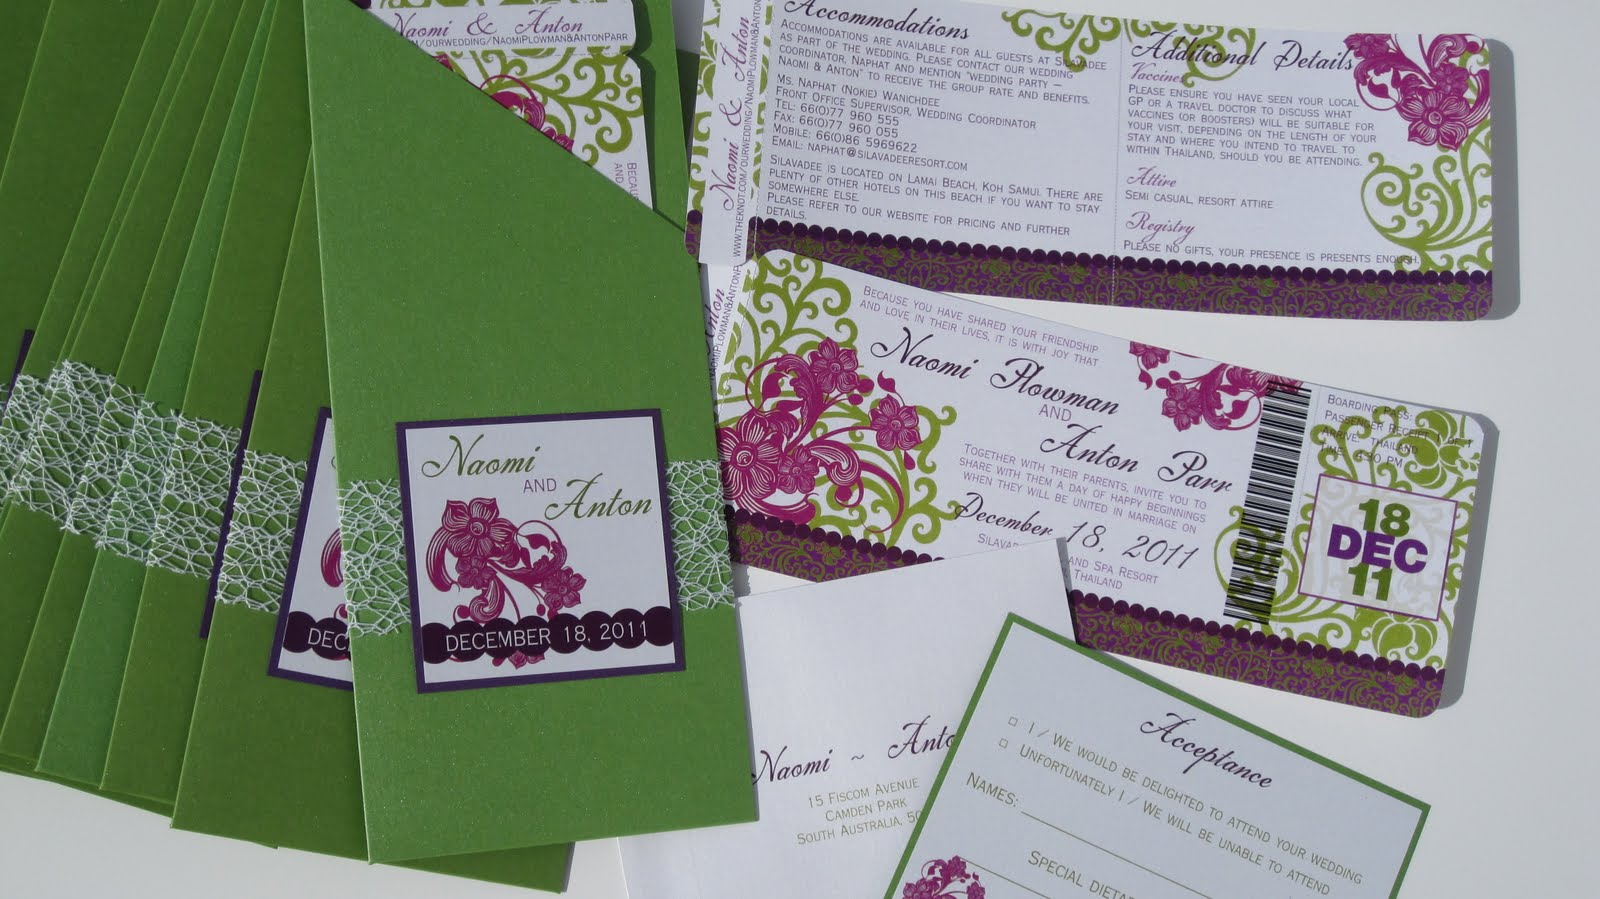 Khmer Wedding Invitations: Memories Of Today: Vintage Thai Boarding Pass